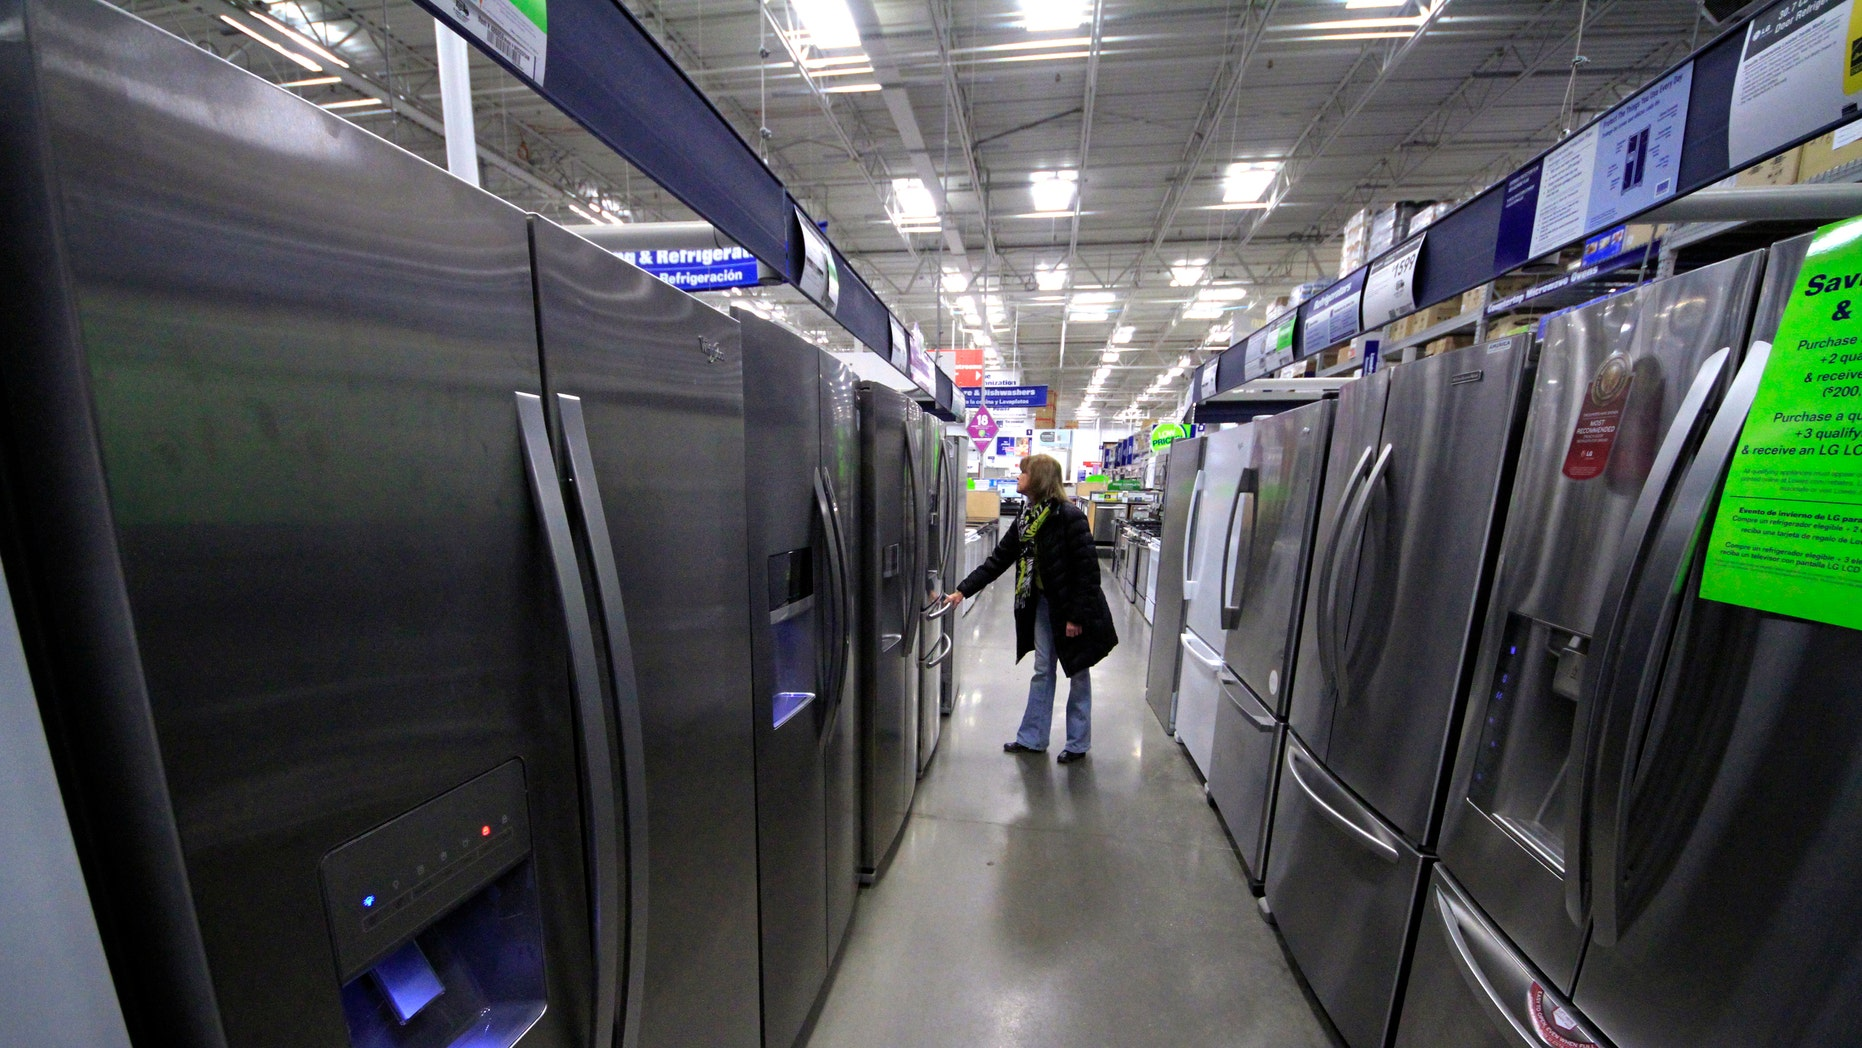 In this Thursday, Jan. 16, 2014, photo,  a woman walks through a display of refrigerators at a Lowe's store in Cranberry Township, Pa.  The Commerce Department releases durable goods for January on Thursday, Feb. 27, 2014. (AP Photo/Gene J. Puskar)